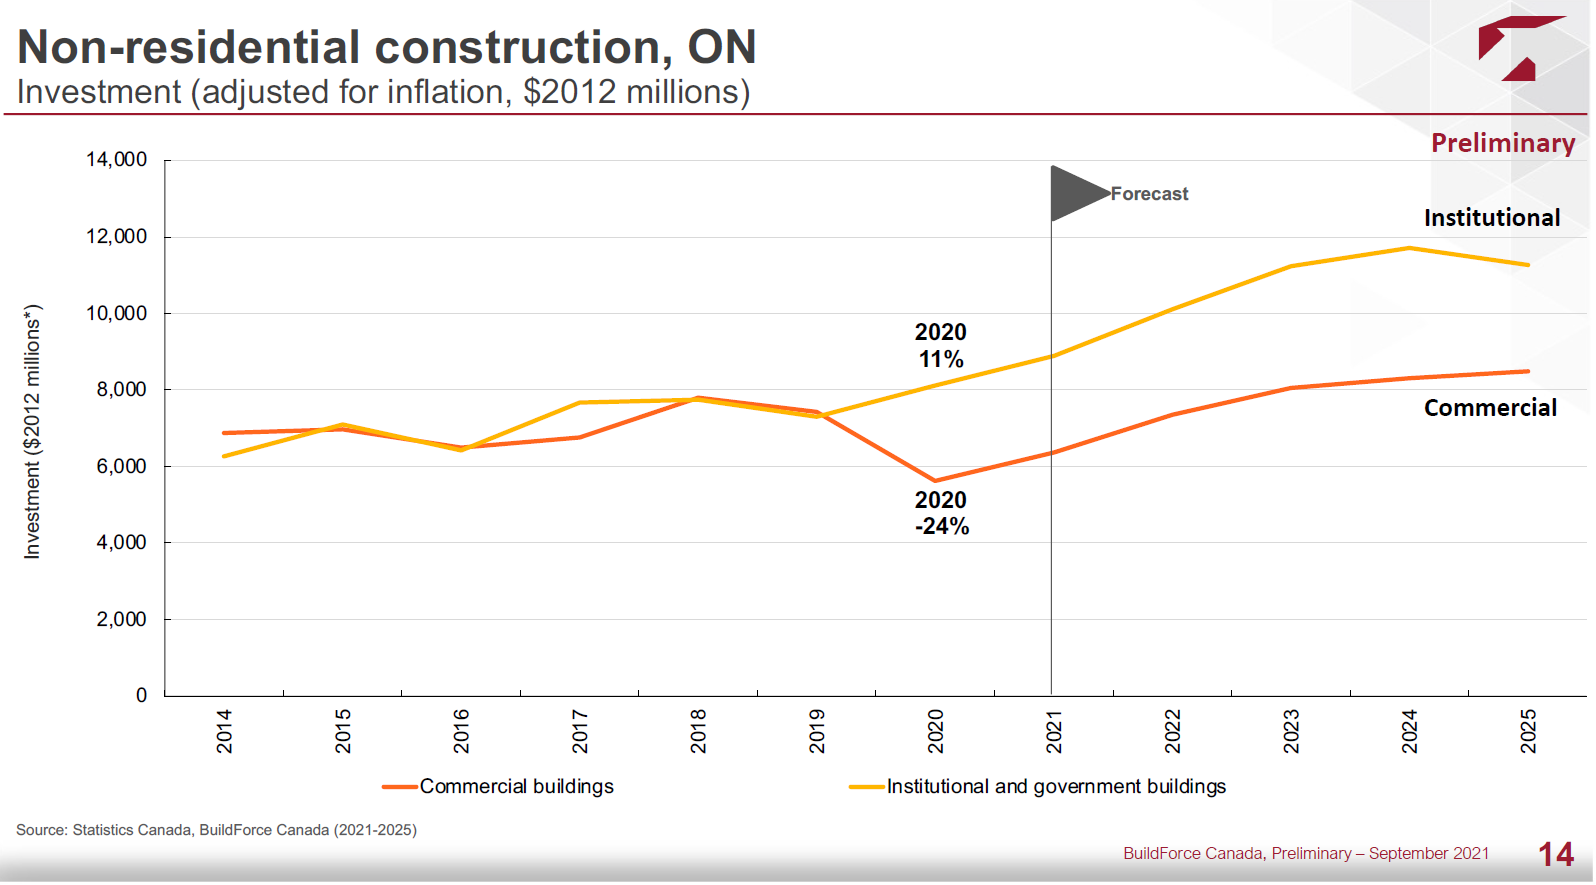 Looking ahead five years, BuildForce expects total commercial project investment in Ontario to rise slowly each year to reach more than $8 billion, while institutional investment should rise every year and reach nearly $12 billion in 2024 but then dip in 2025.